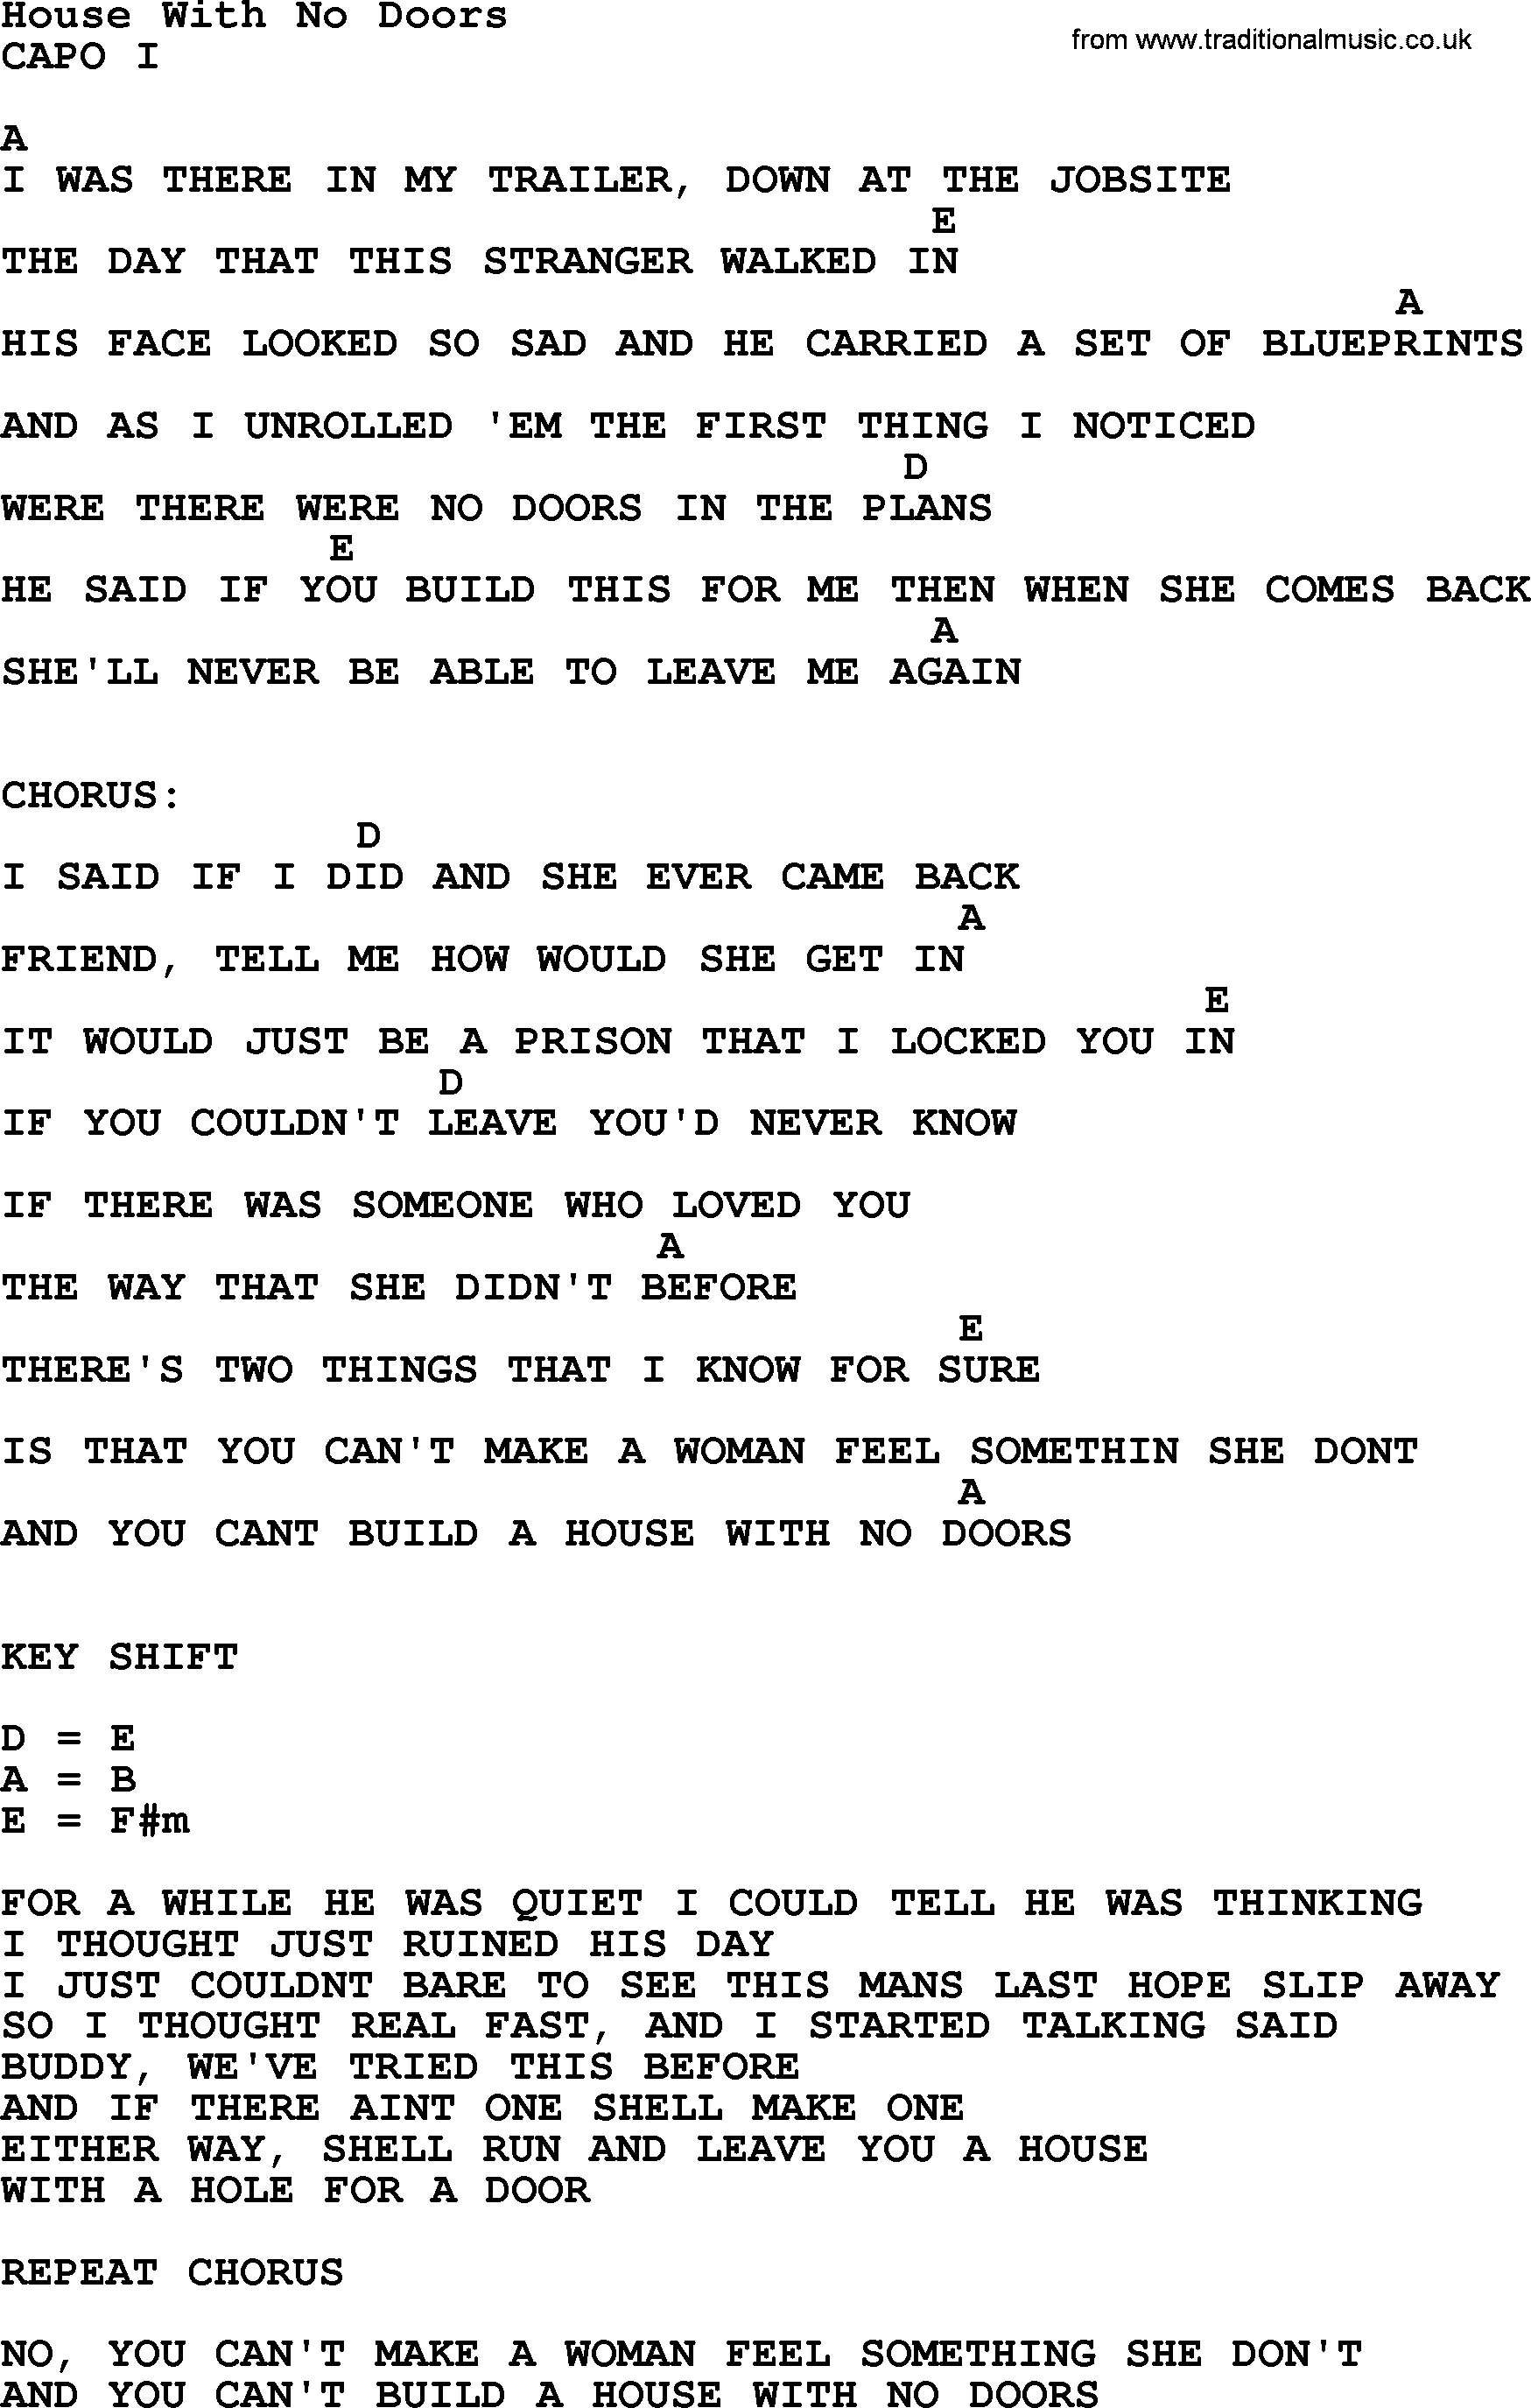 House with no doors by george strait lyrics and chords george strait song house with no doors lyrics and chords malvernweather Image collections